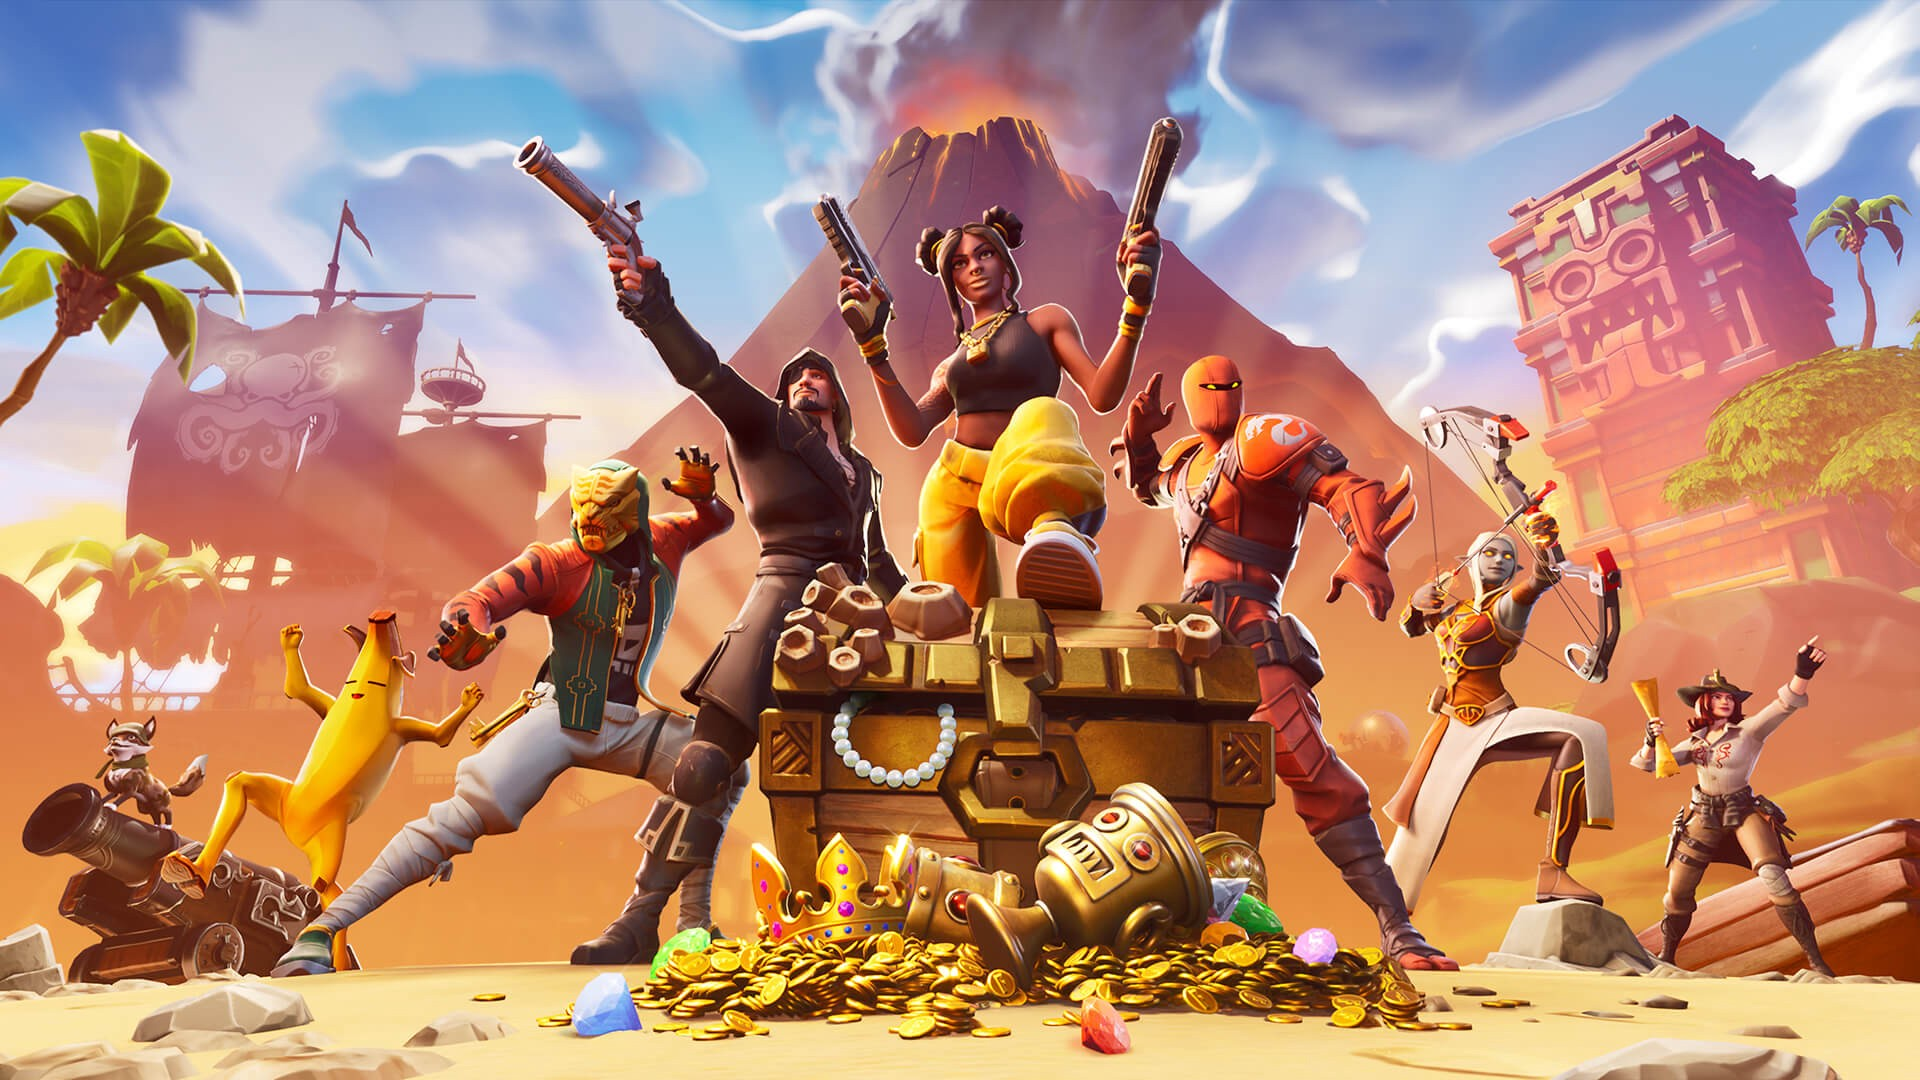 Most sort out gaming wallpapers: Fortnite gaming wallpapers